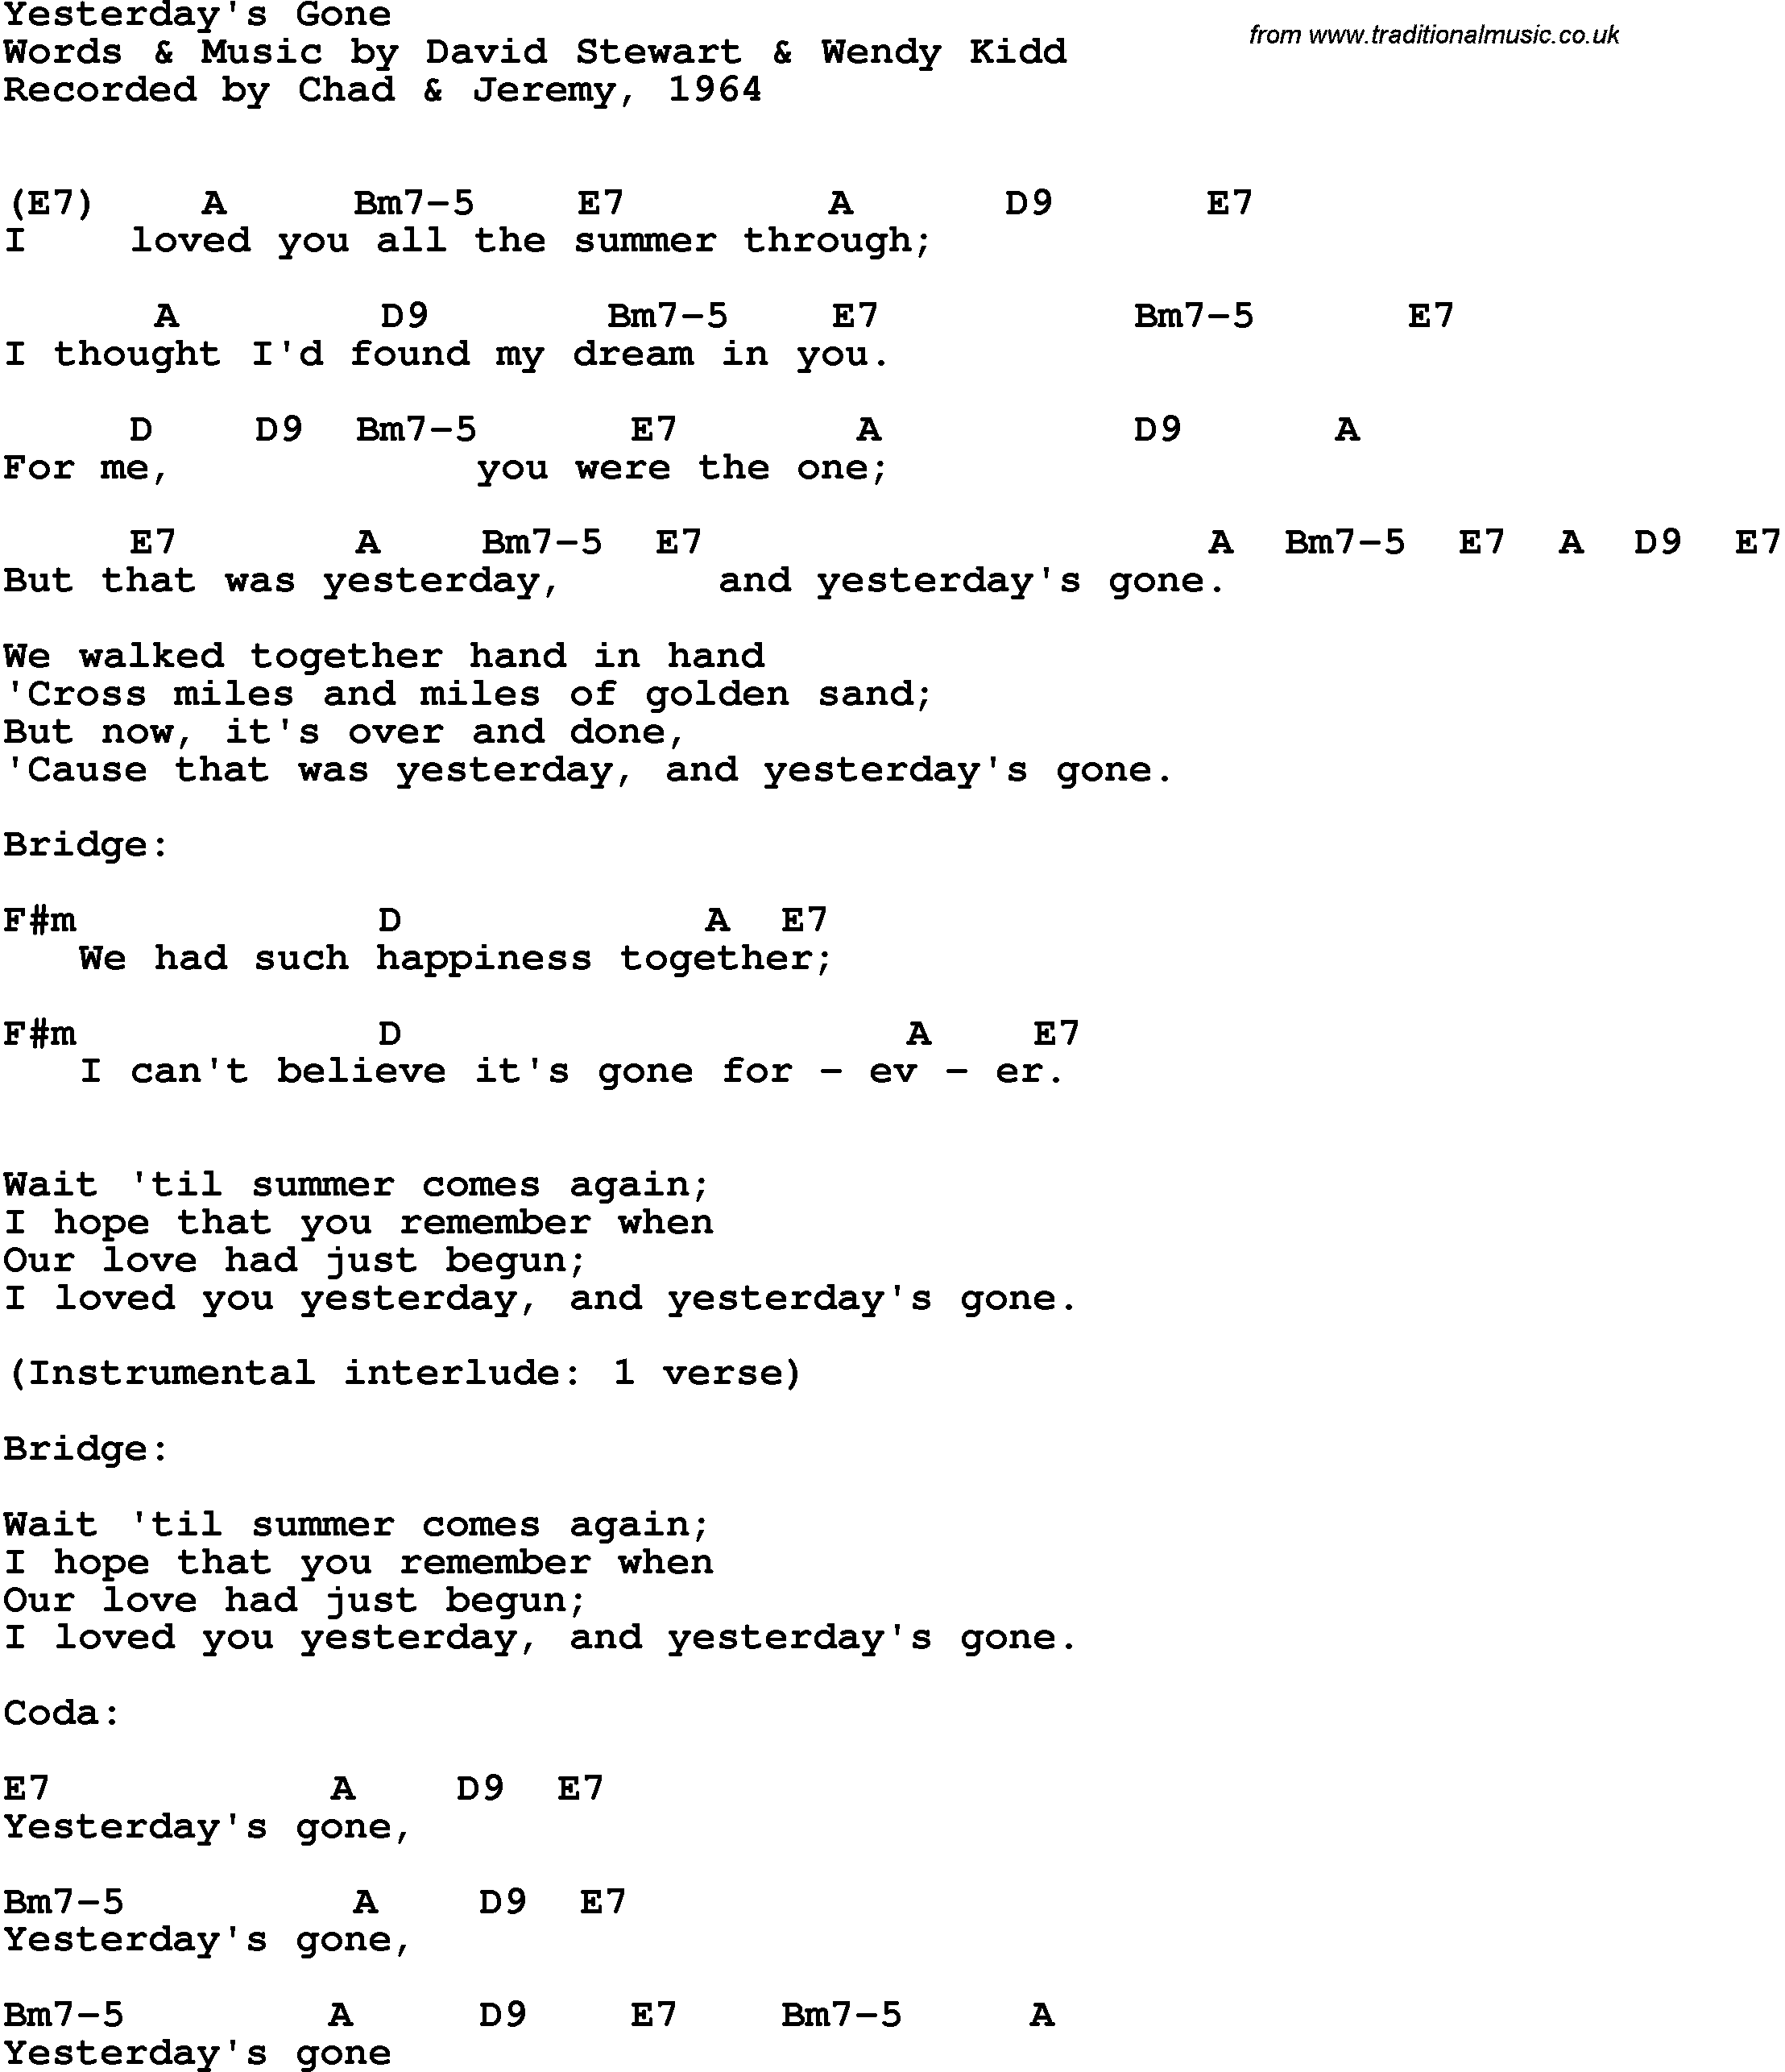 Song Lyrics With Guitar Chords For Yesterdays Gone Chad Jeremy